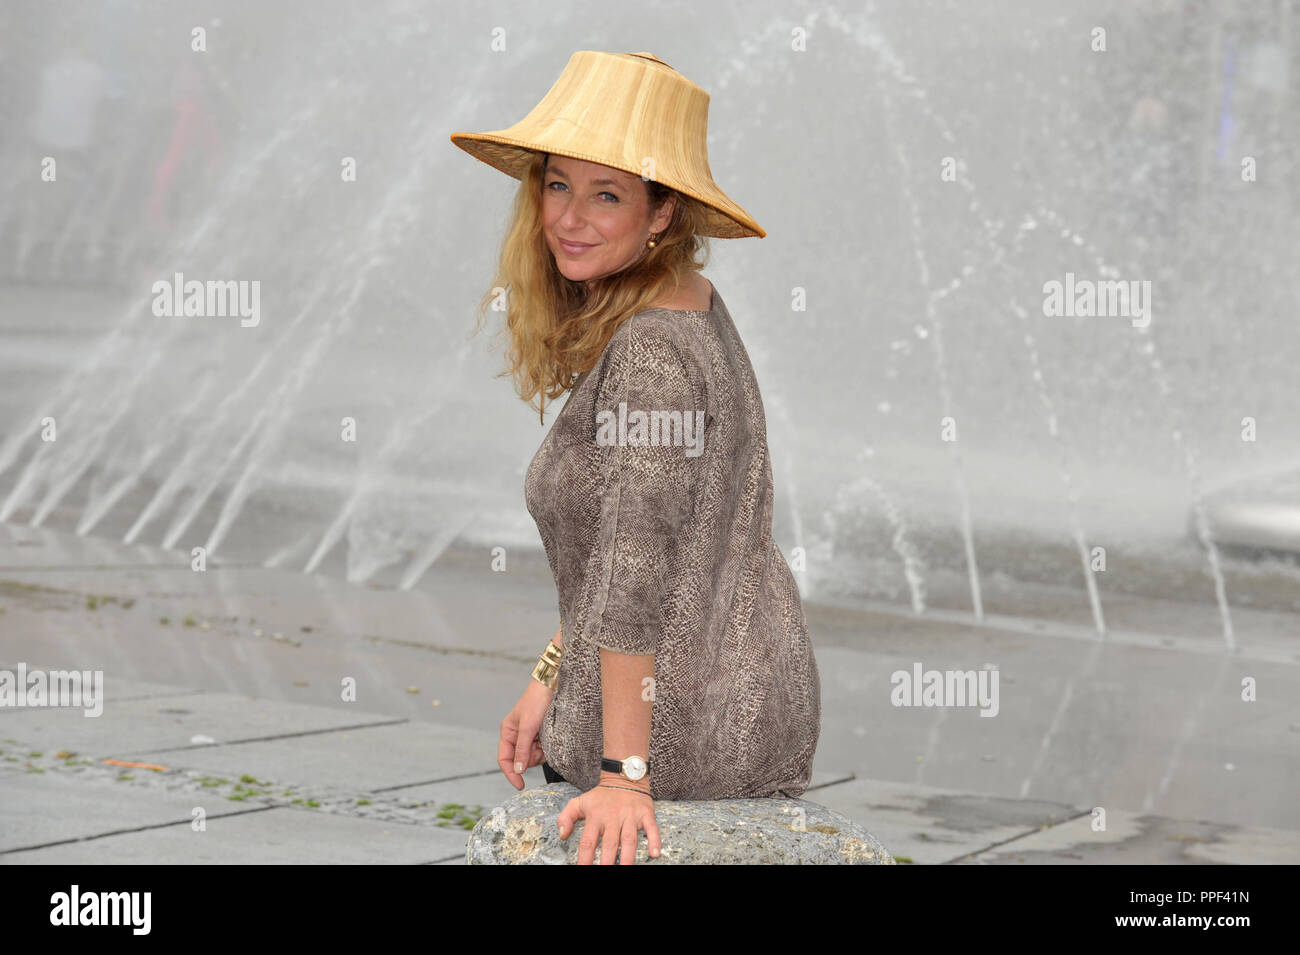 Diana Iljine, managing director of Muenchner Filmwochen and director of Filmfest Muenchen, pictured at the Stachus Fountain with her favorite piece for the summer. - Stock Image